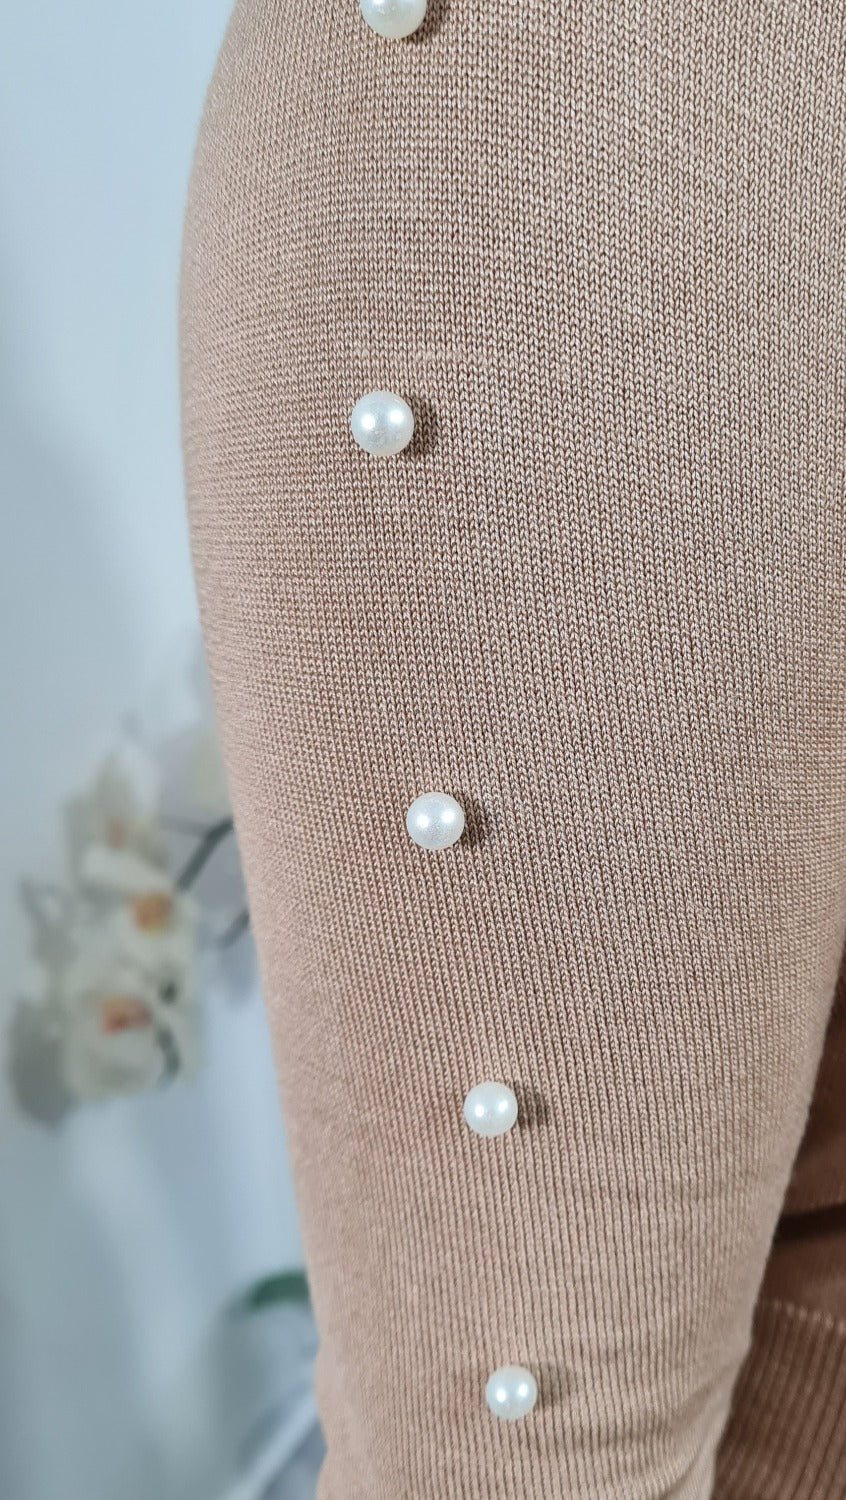 Chiffon and Pearl detail loungewear set